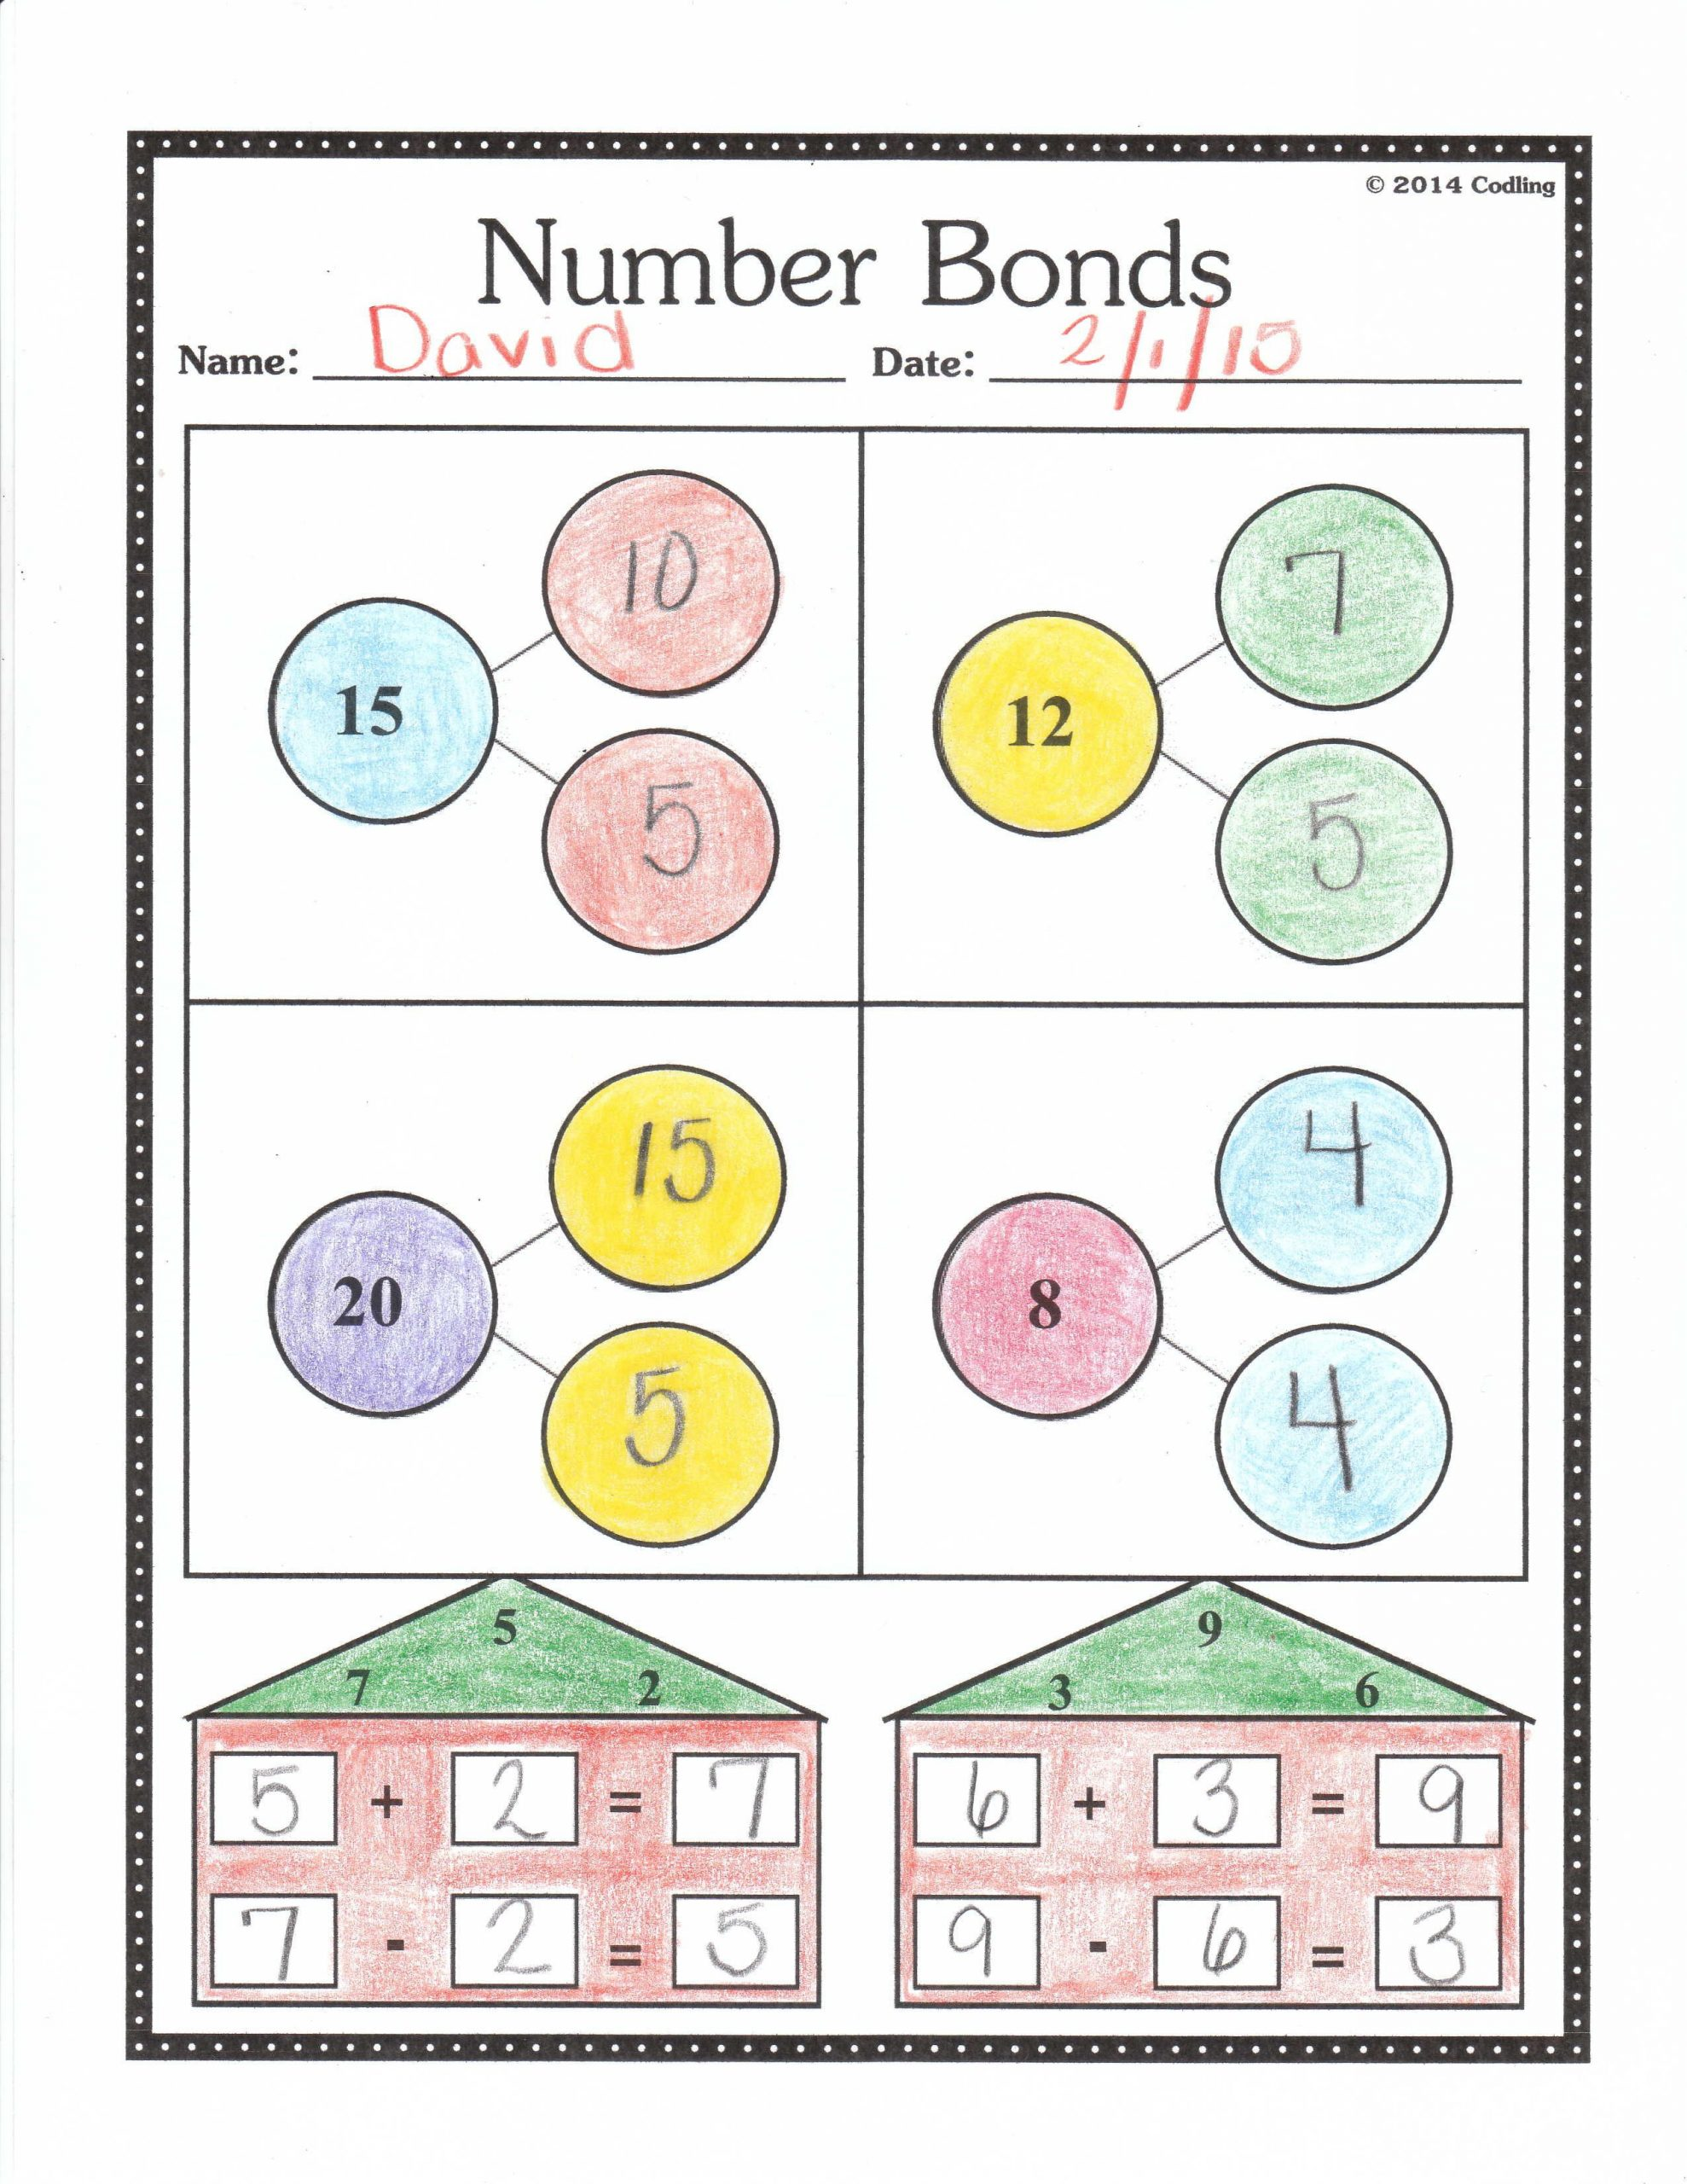 Number Bond Worksheets 1st Grade Number Bonds Worksheet First Grade